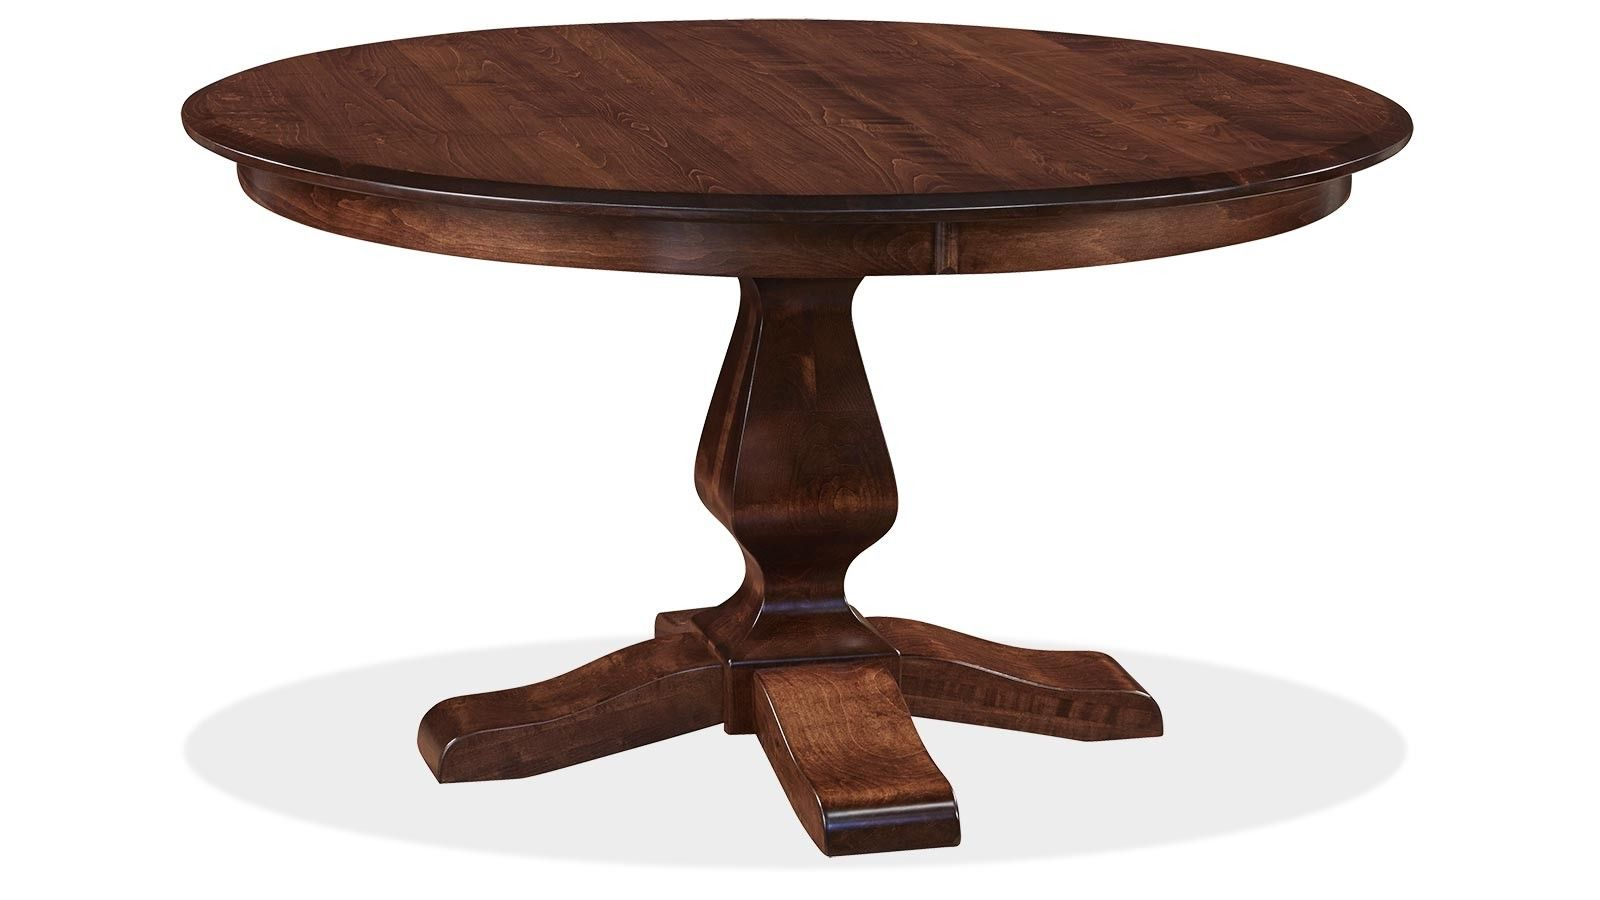 Ashley Asbury Brown Maple Dining Table Front 60 Round Dining Table Round Dining Room Table Round Dining Room